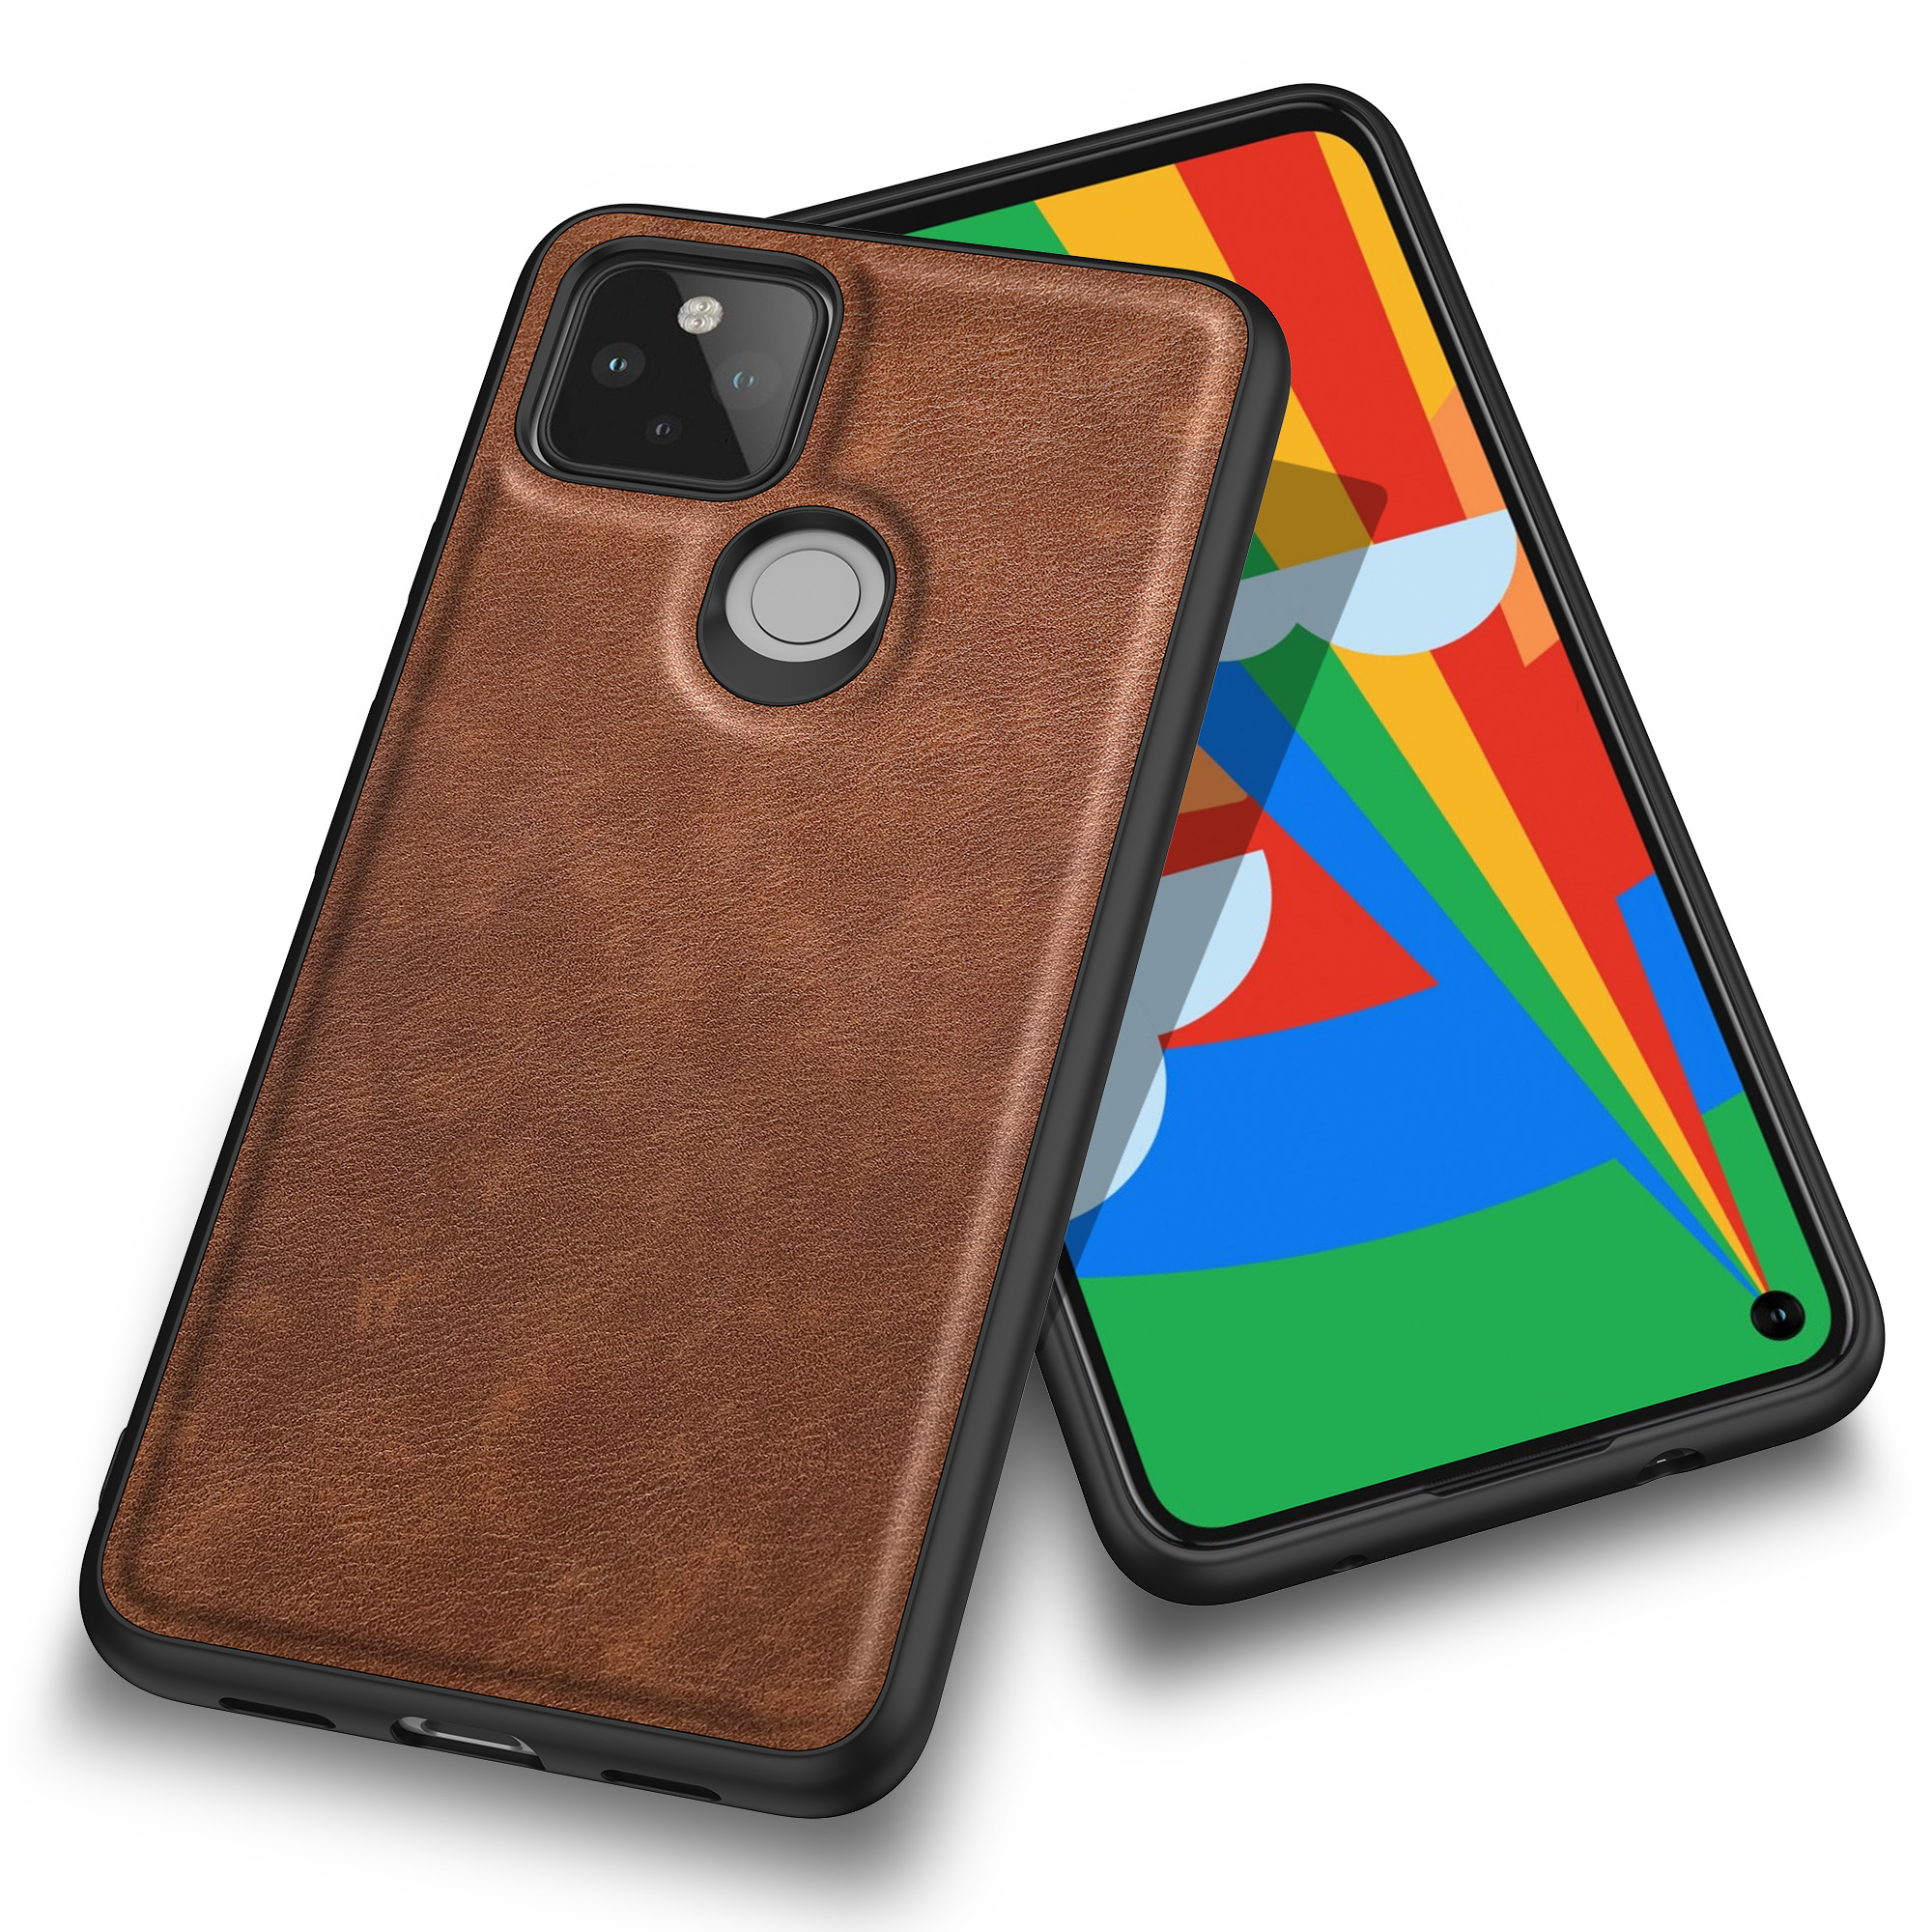 Case For Google Pixel 4A 5G Luxury Vintage Leather Skin Capa With Slot Phone Cover For Google Pixel 4A 4G Anti Drop Cases